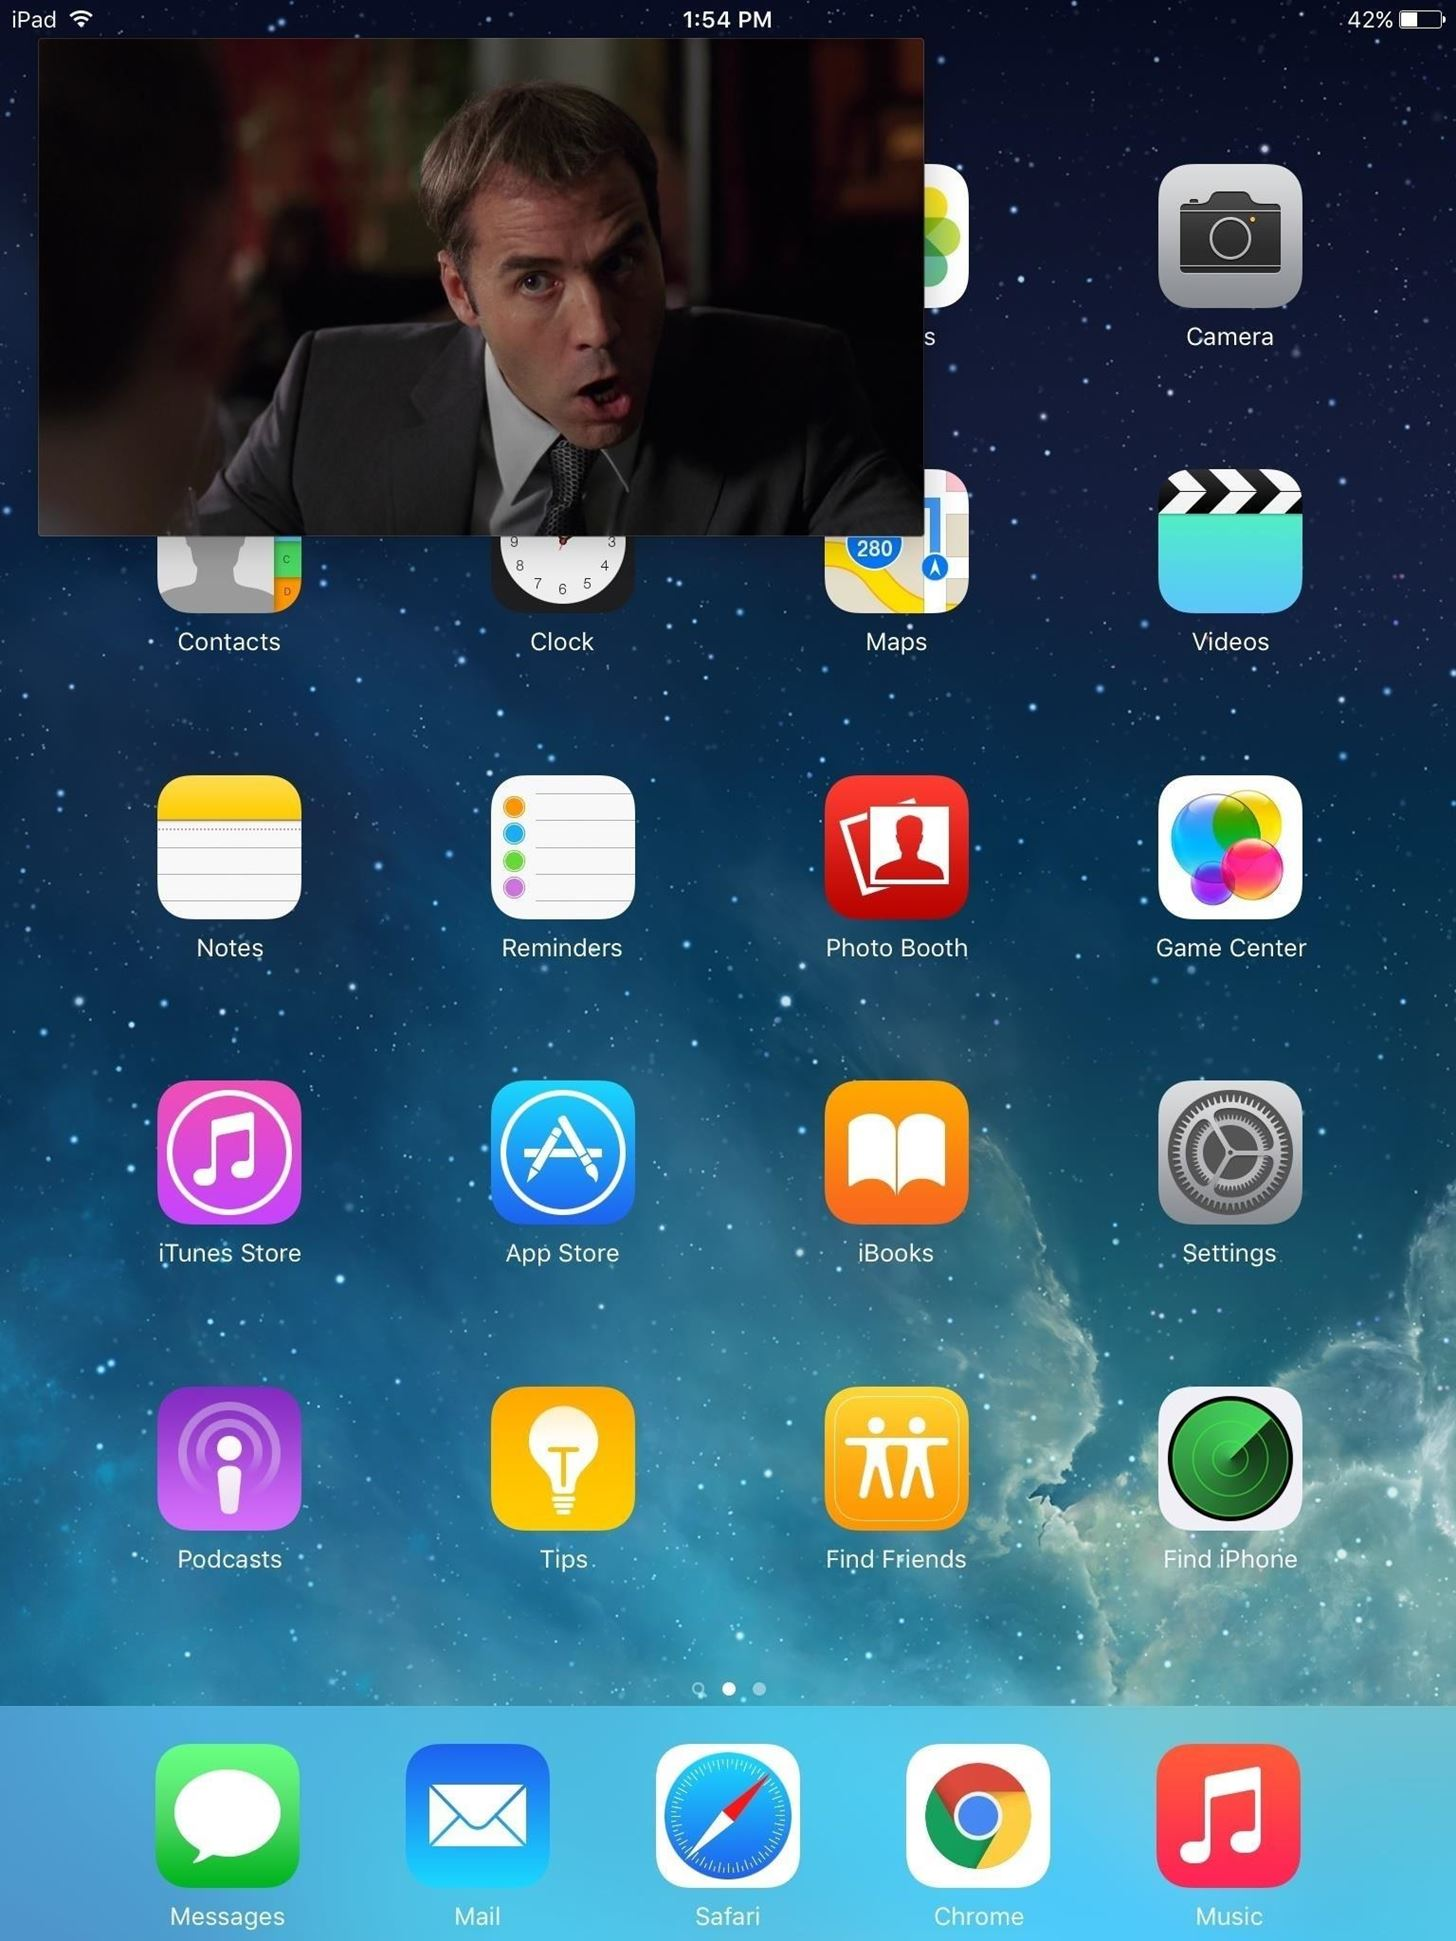 How to Get a Floating Video Window While Multitasking on Your iPad